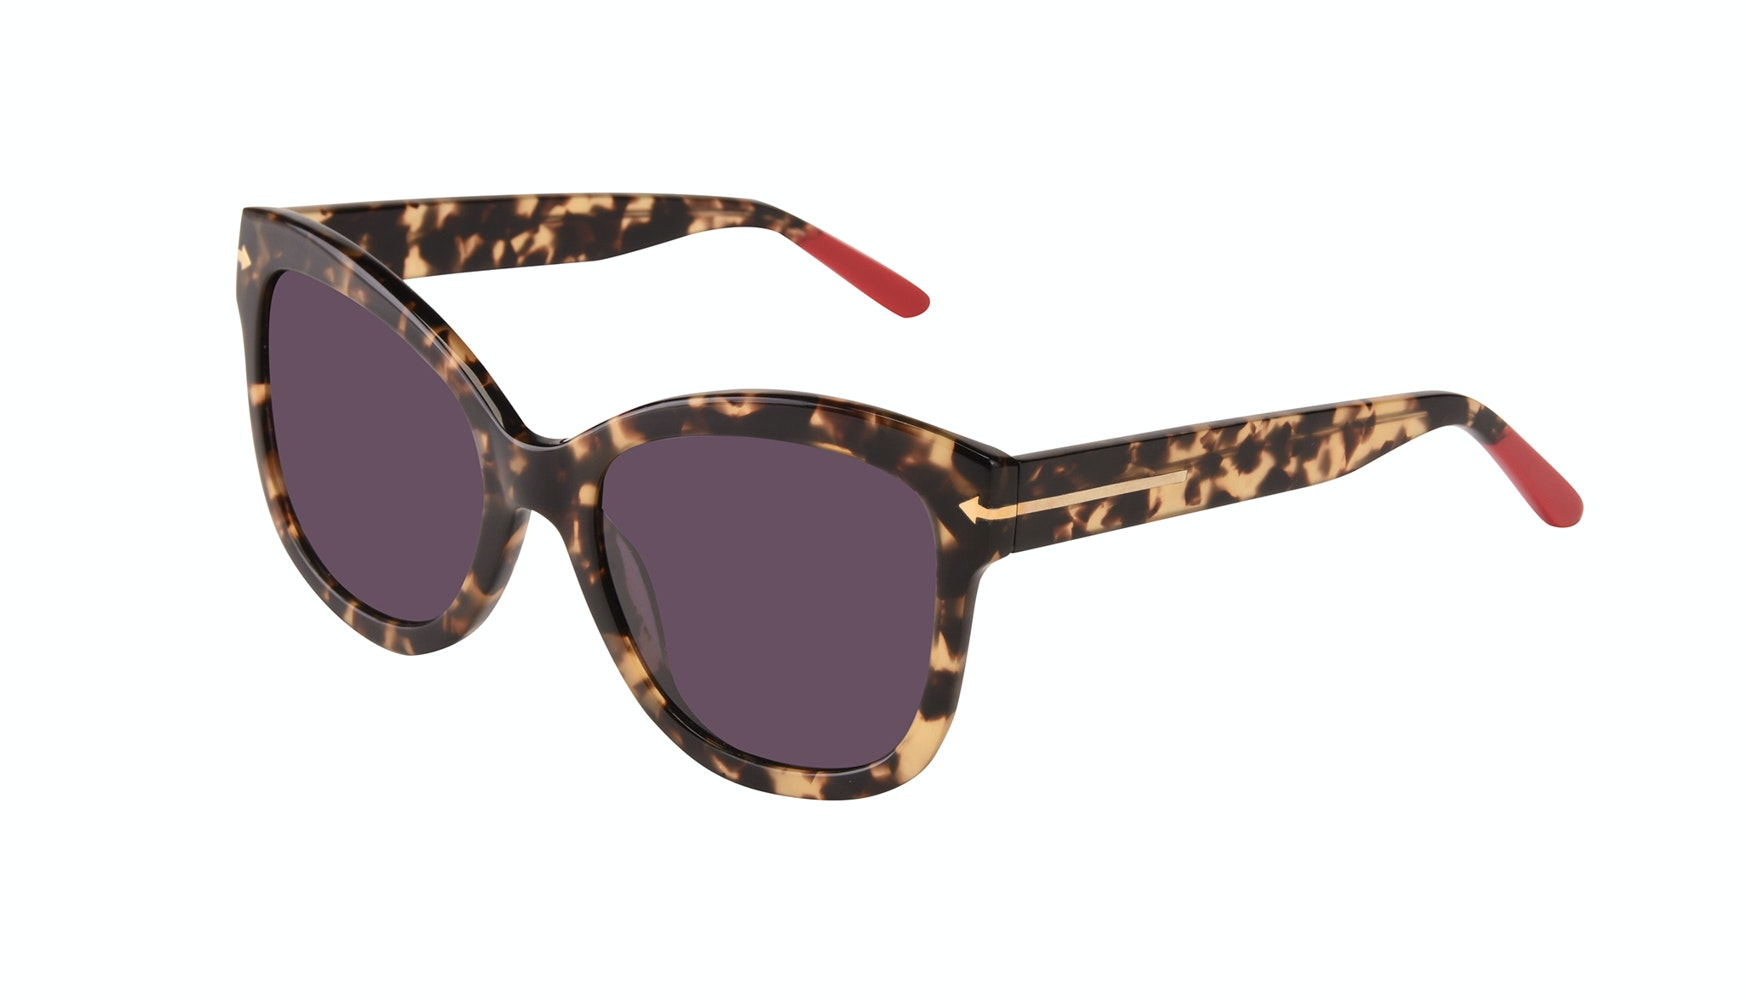 Affordable Fashion Glasses Cat Eye Square Sunglasses Women Marlo Espresso Tilt